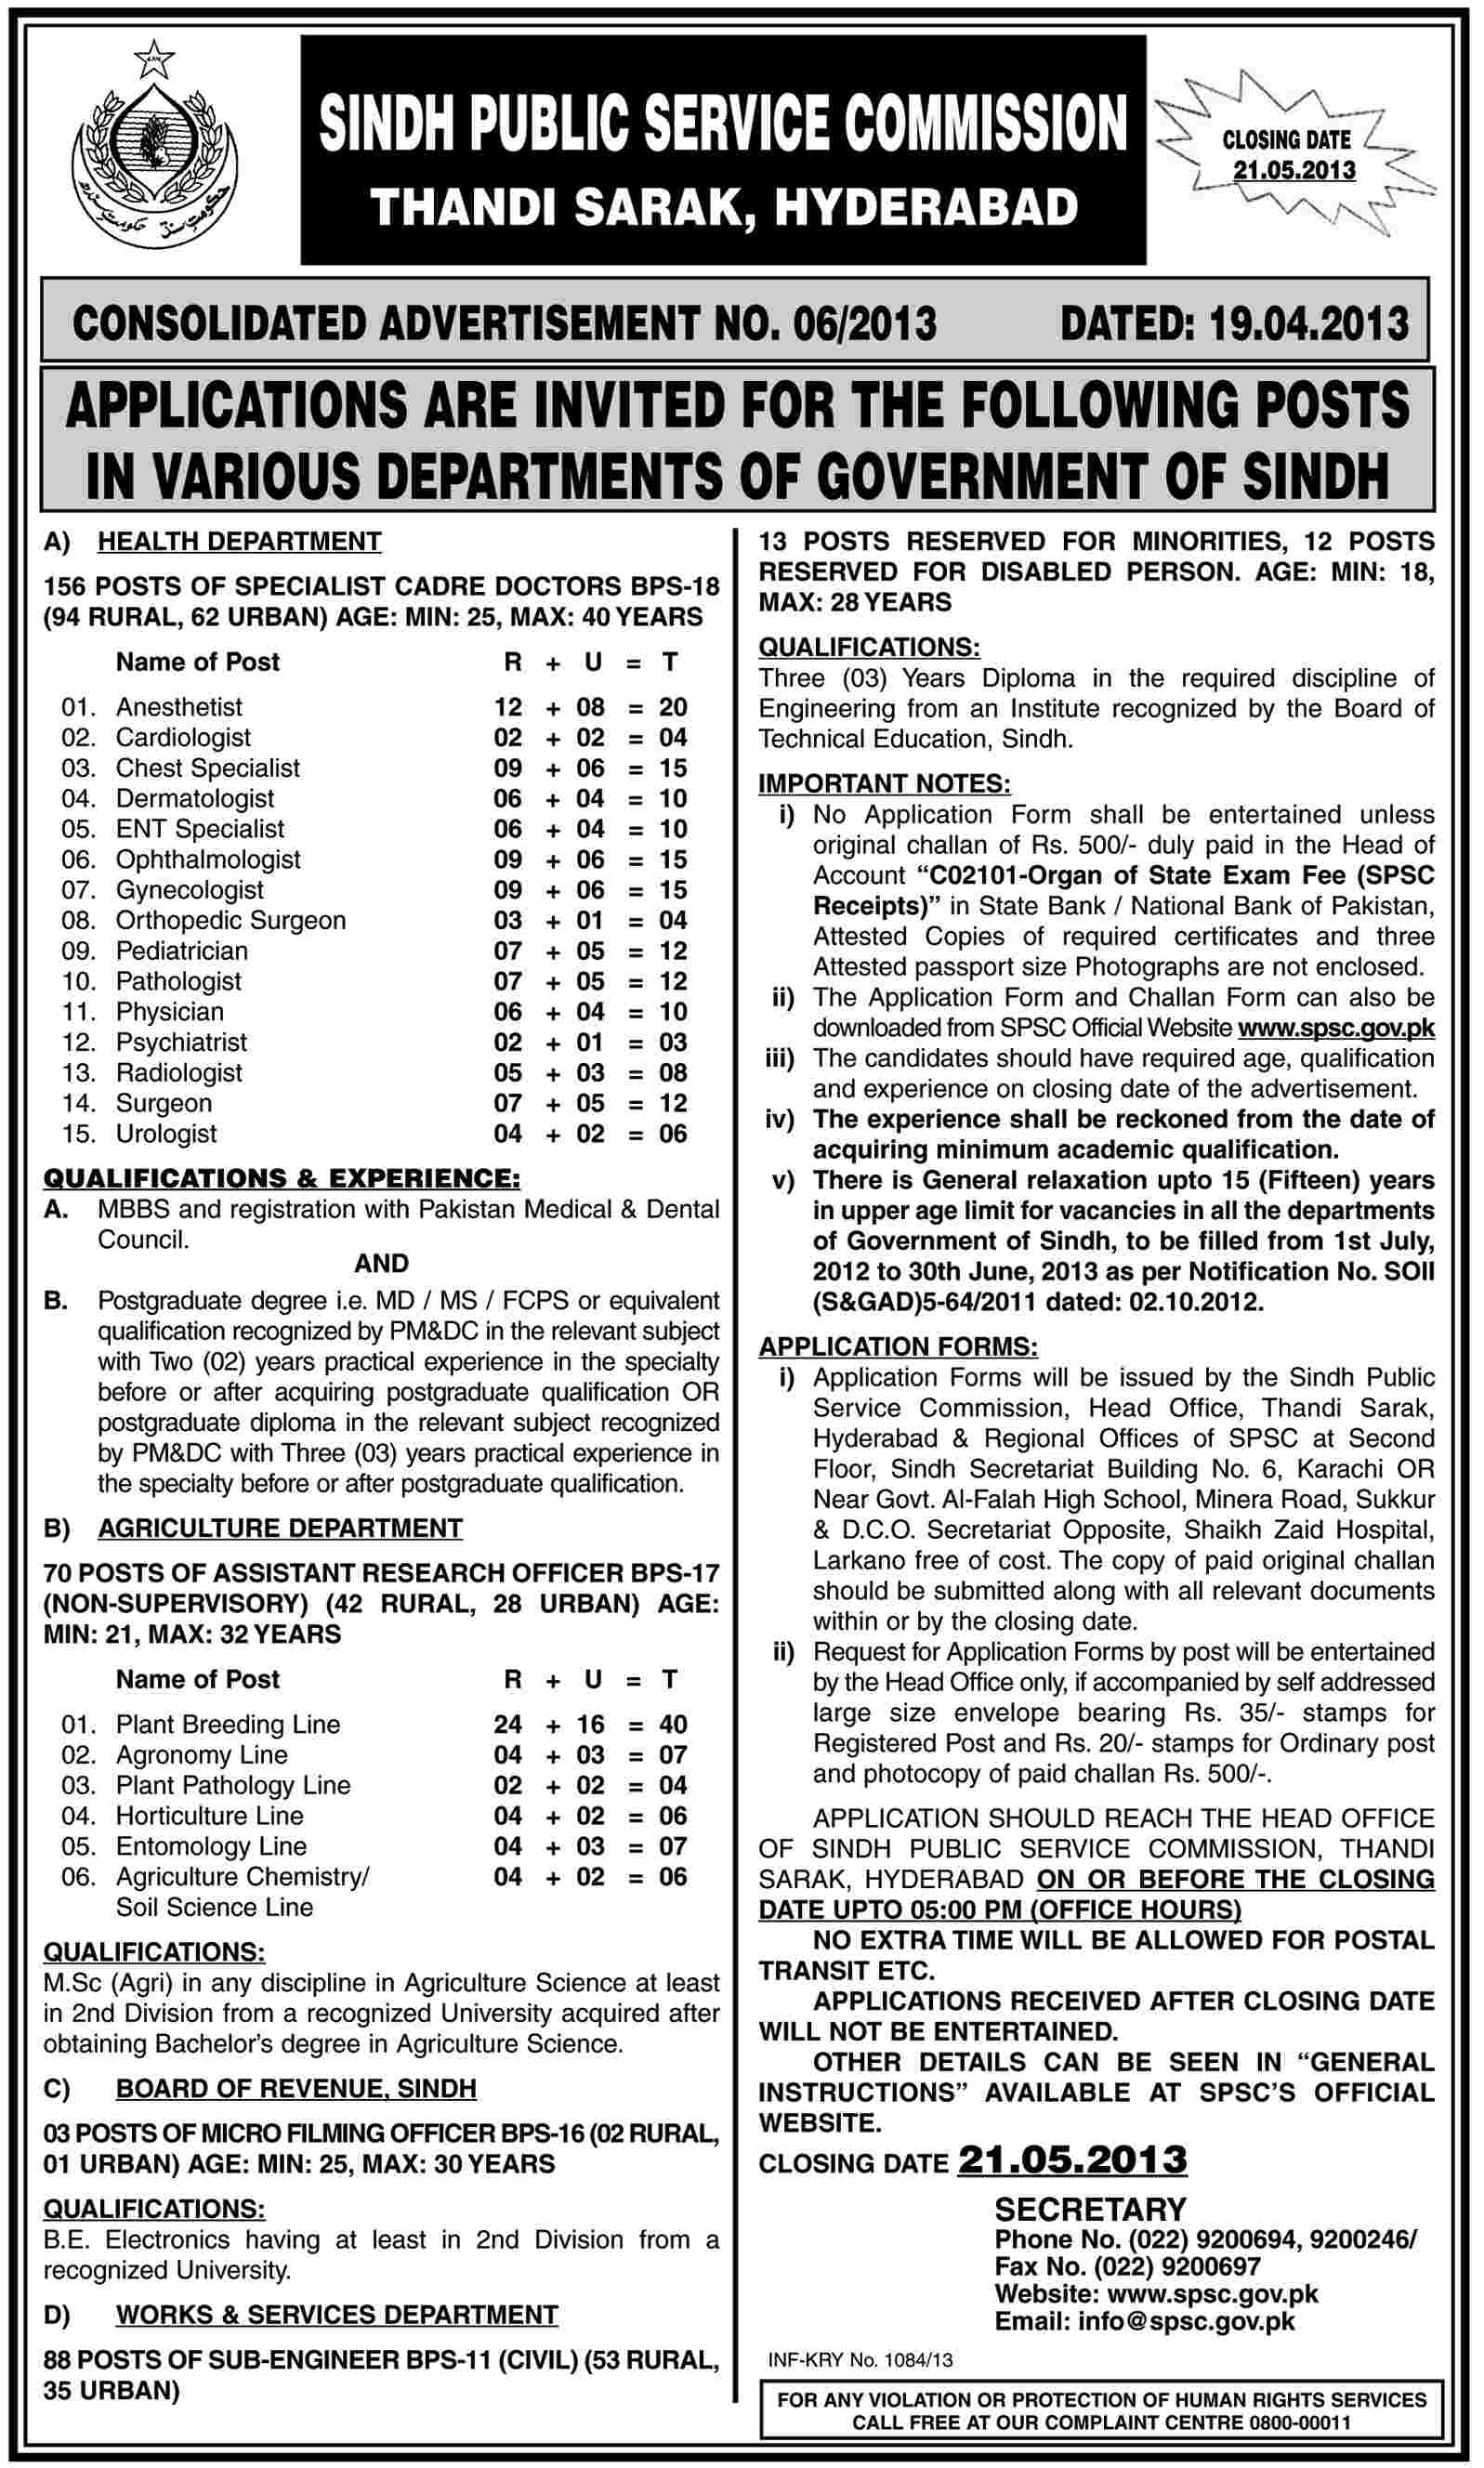 Jobs for Doctors & Engineering in Sindh Public Service Commission Hyderabad